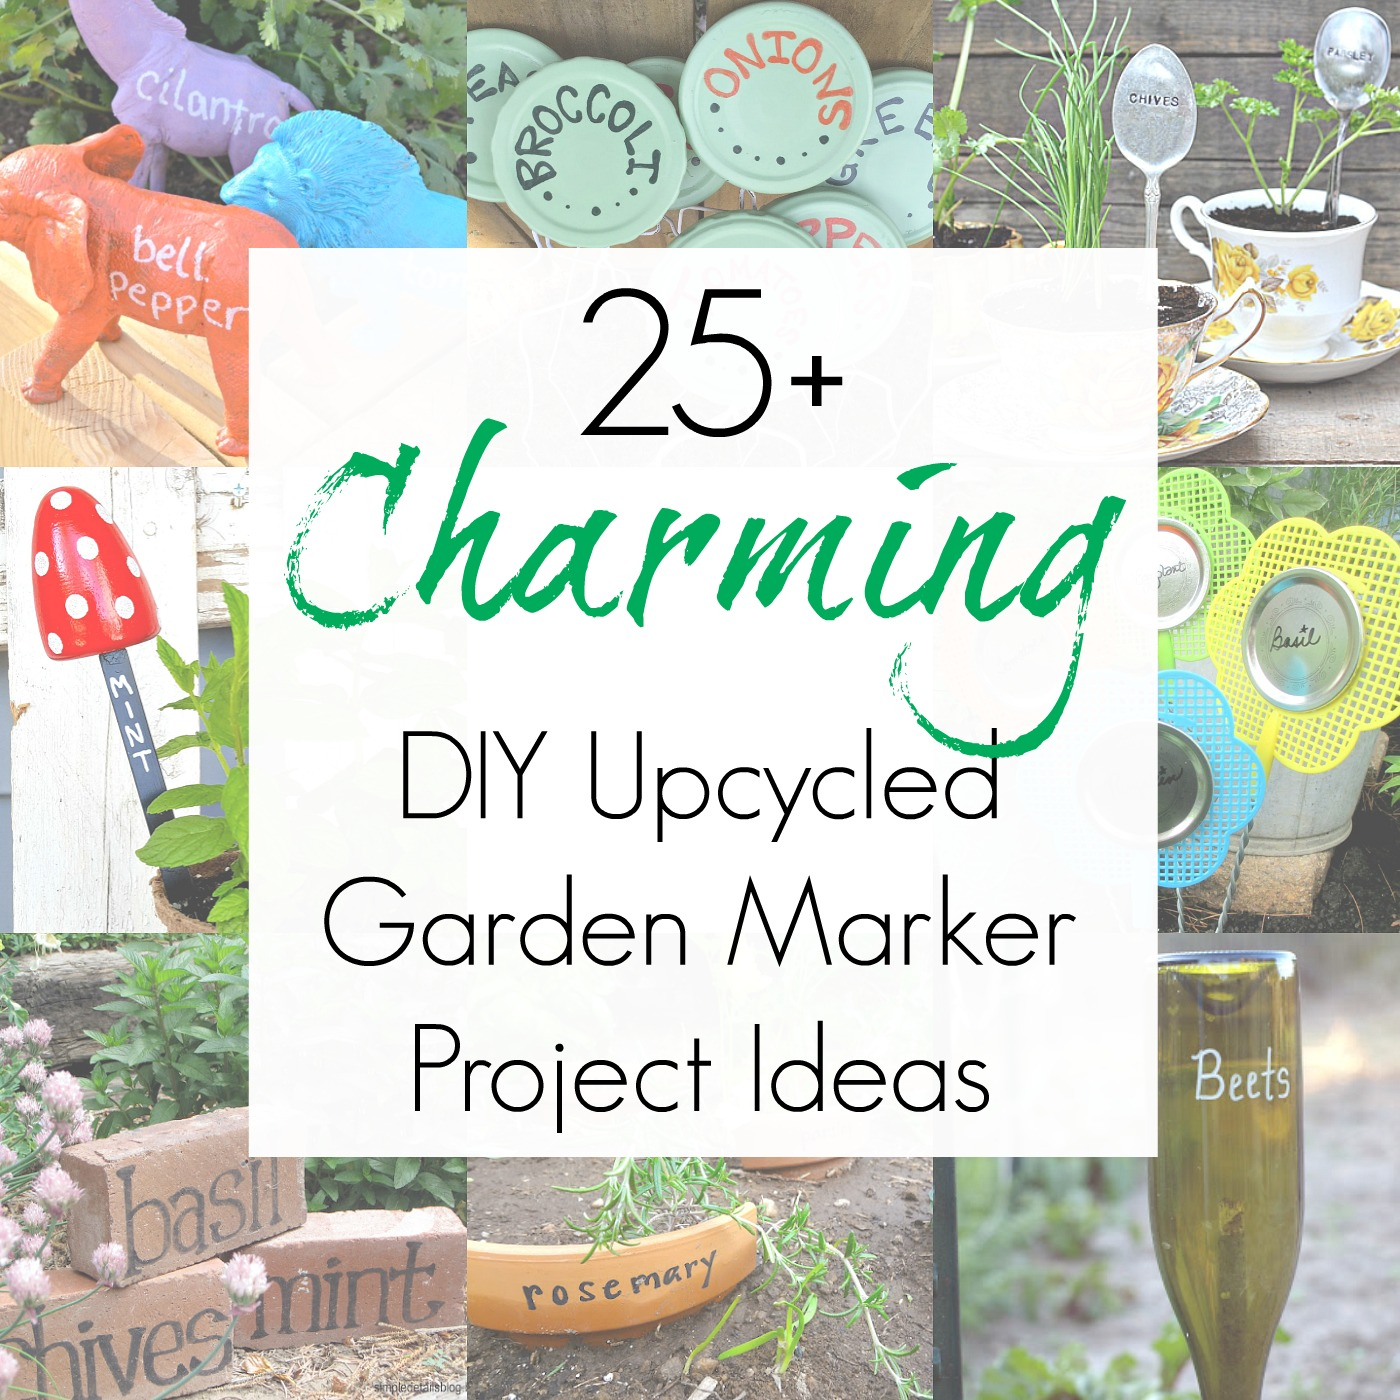 Junk Garden Ideas 2018 Edition: DIY Repurposed And Upcycled Projects For Your Yard And Garden